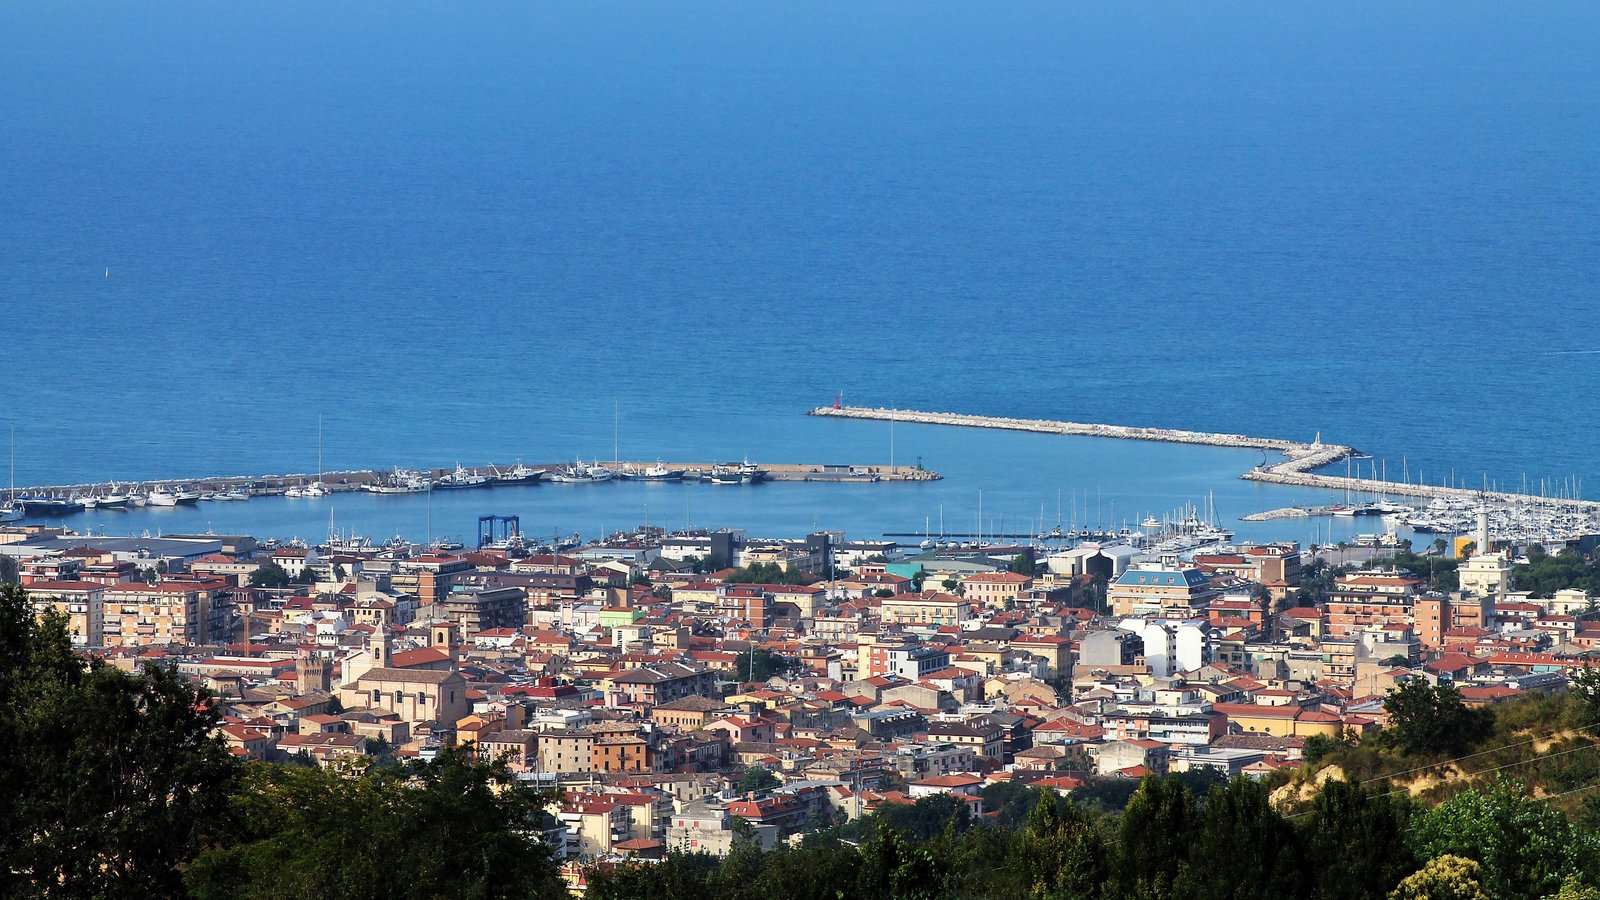 San Benedetto del Tronto which includes a city and general coastal views